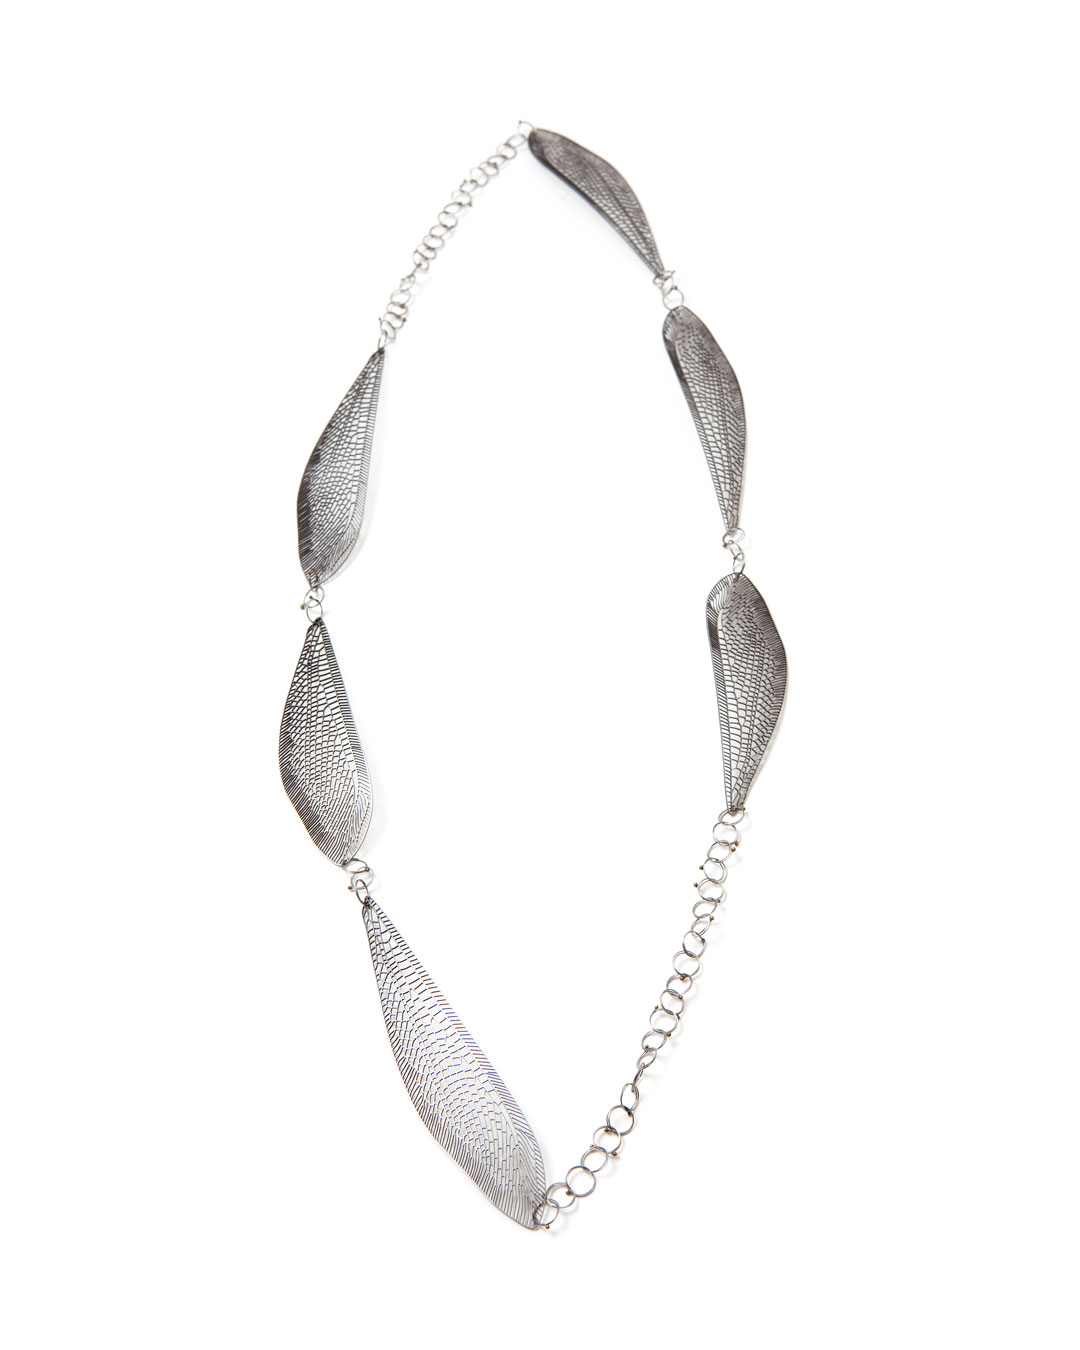 Mirei Takeuchi, untitled, 2012, necklace; stainless steel, steel, 330 x 130 x 5 mm, €2100